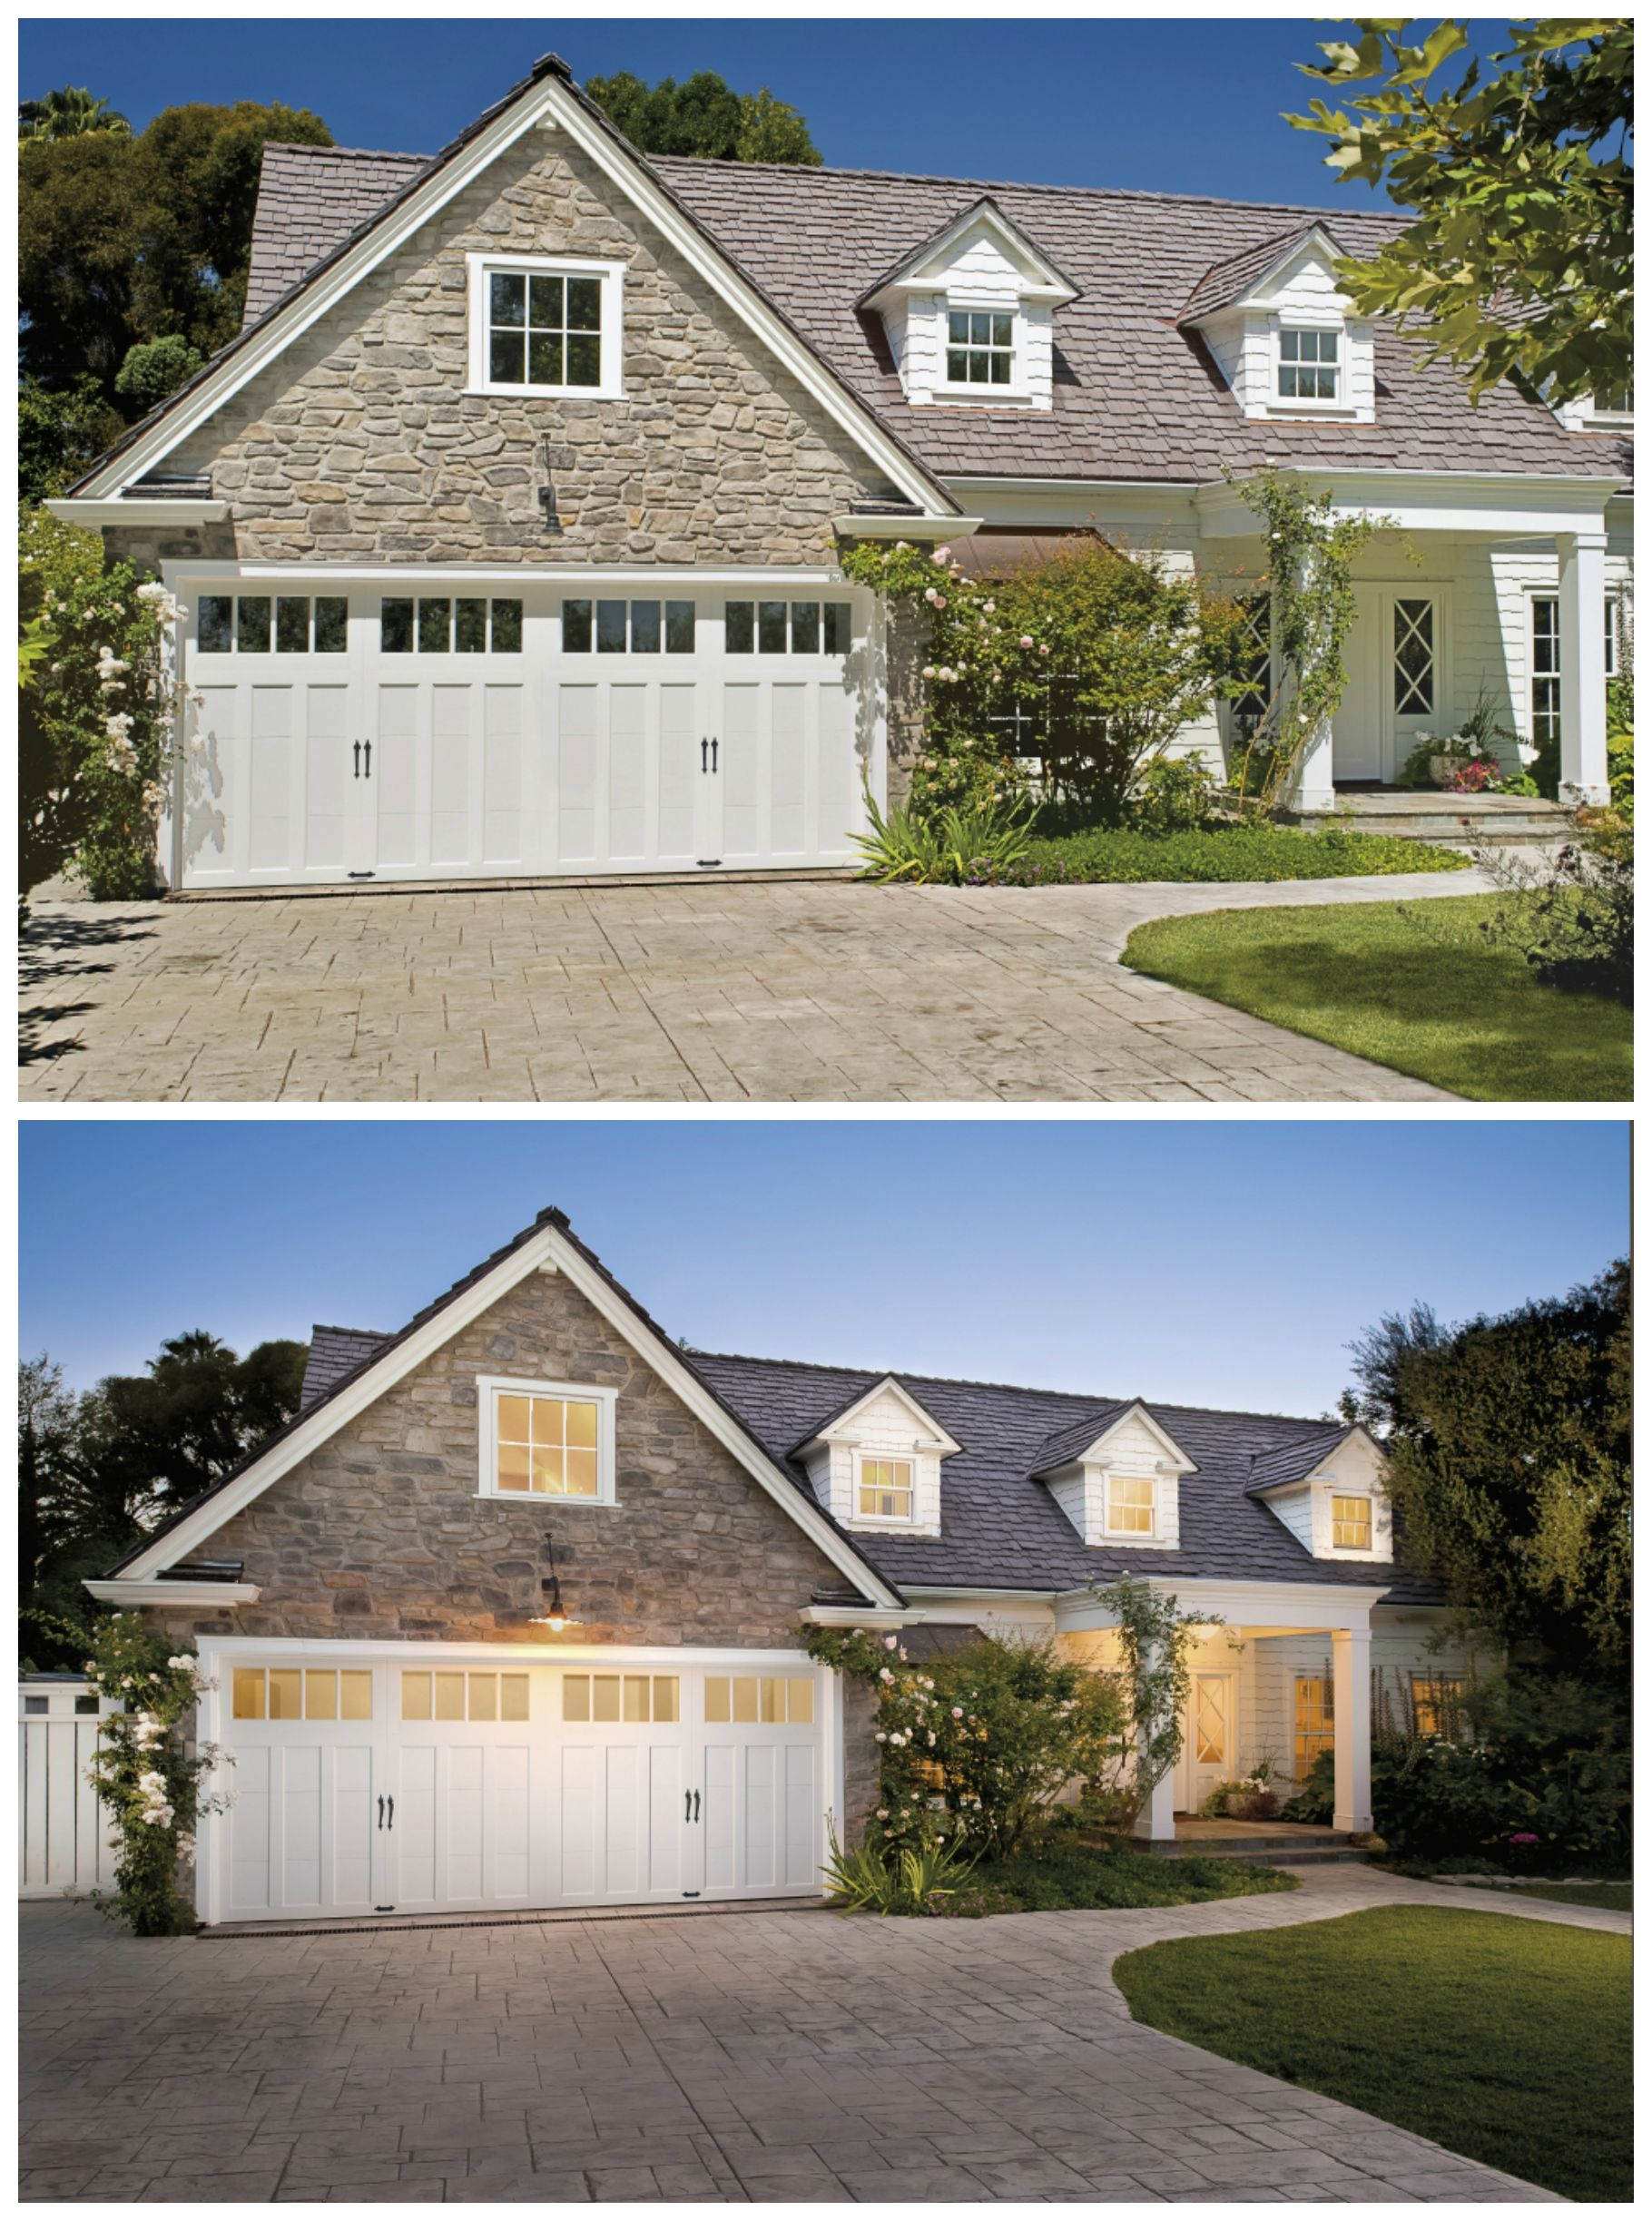 Garage door repairs by s amp t garage doors of northern virginia - Do The Architectural Elements Of Your Home Enhance Its Appearance Like These Garage Doors Do Clopay Coachman Collection Design Rec 14 Windows